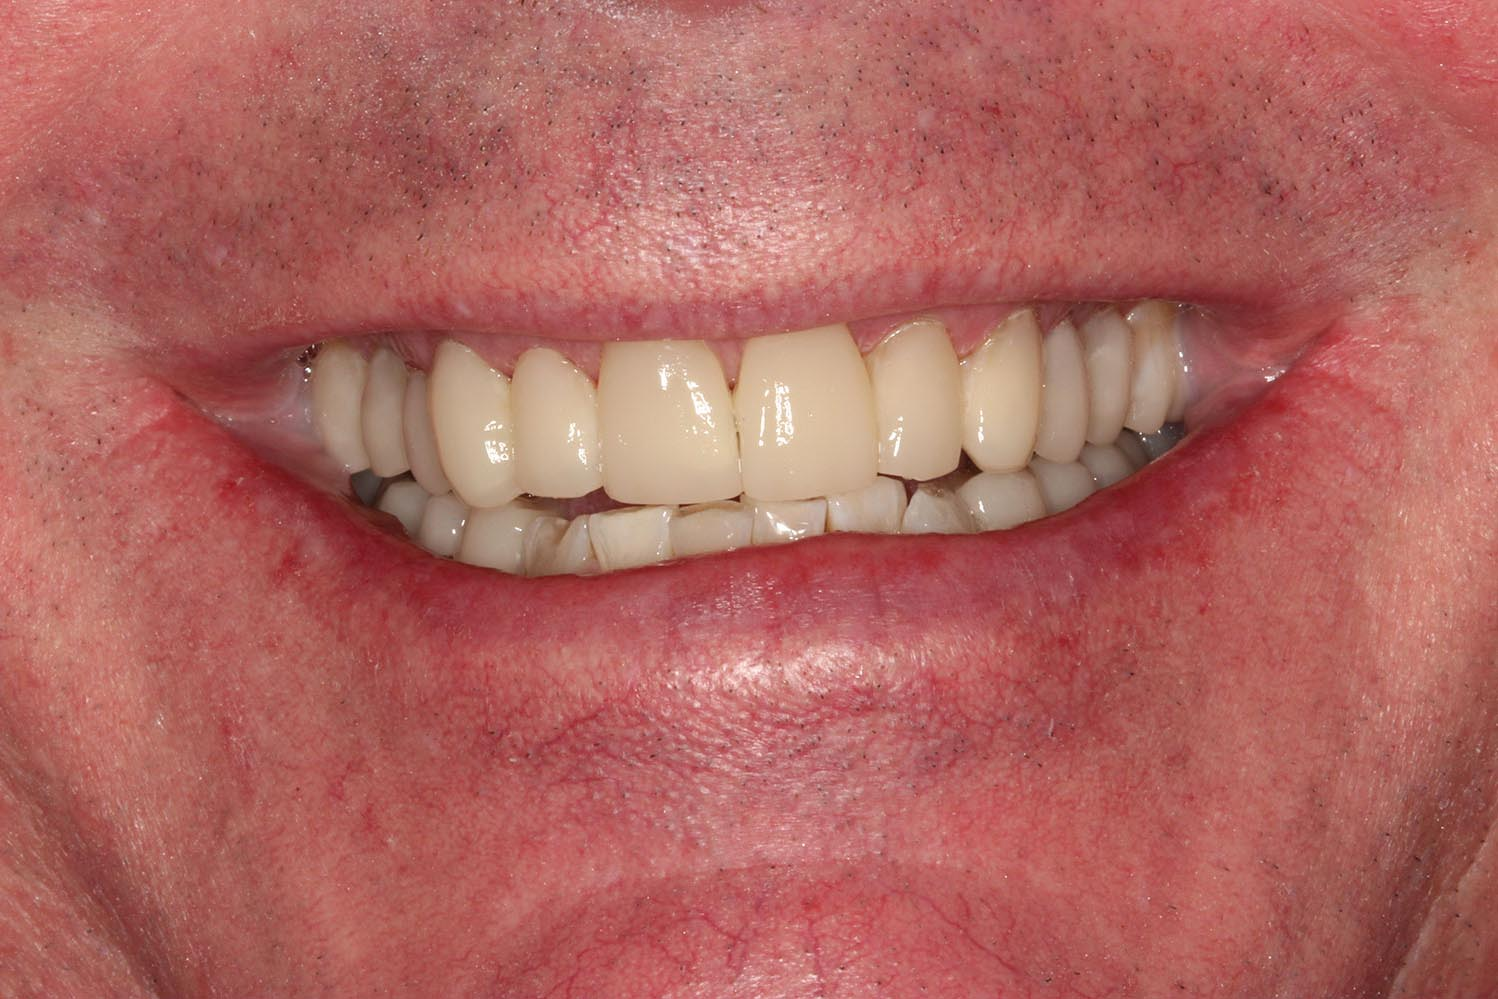 Partially restored teeth and orthodontics